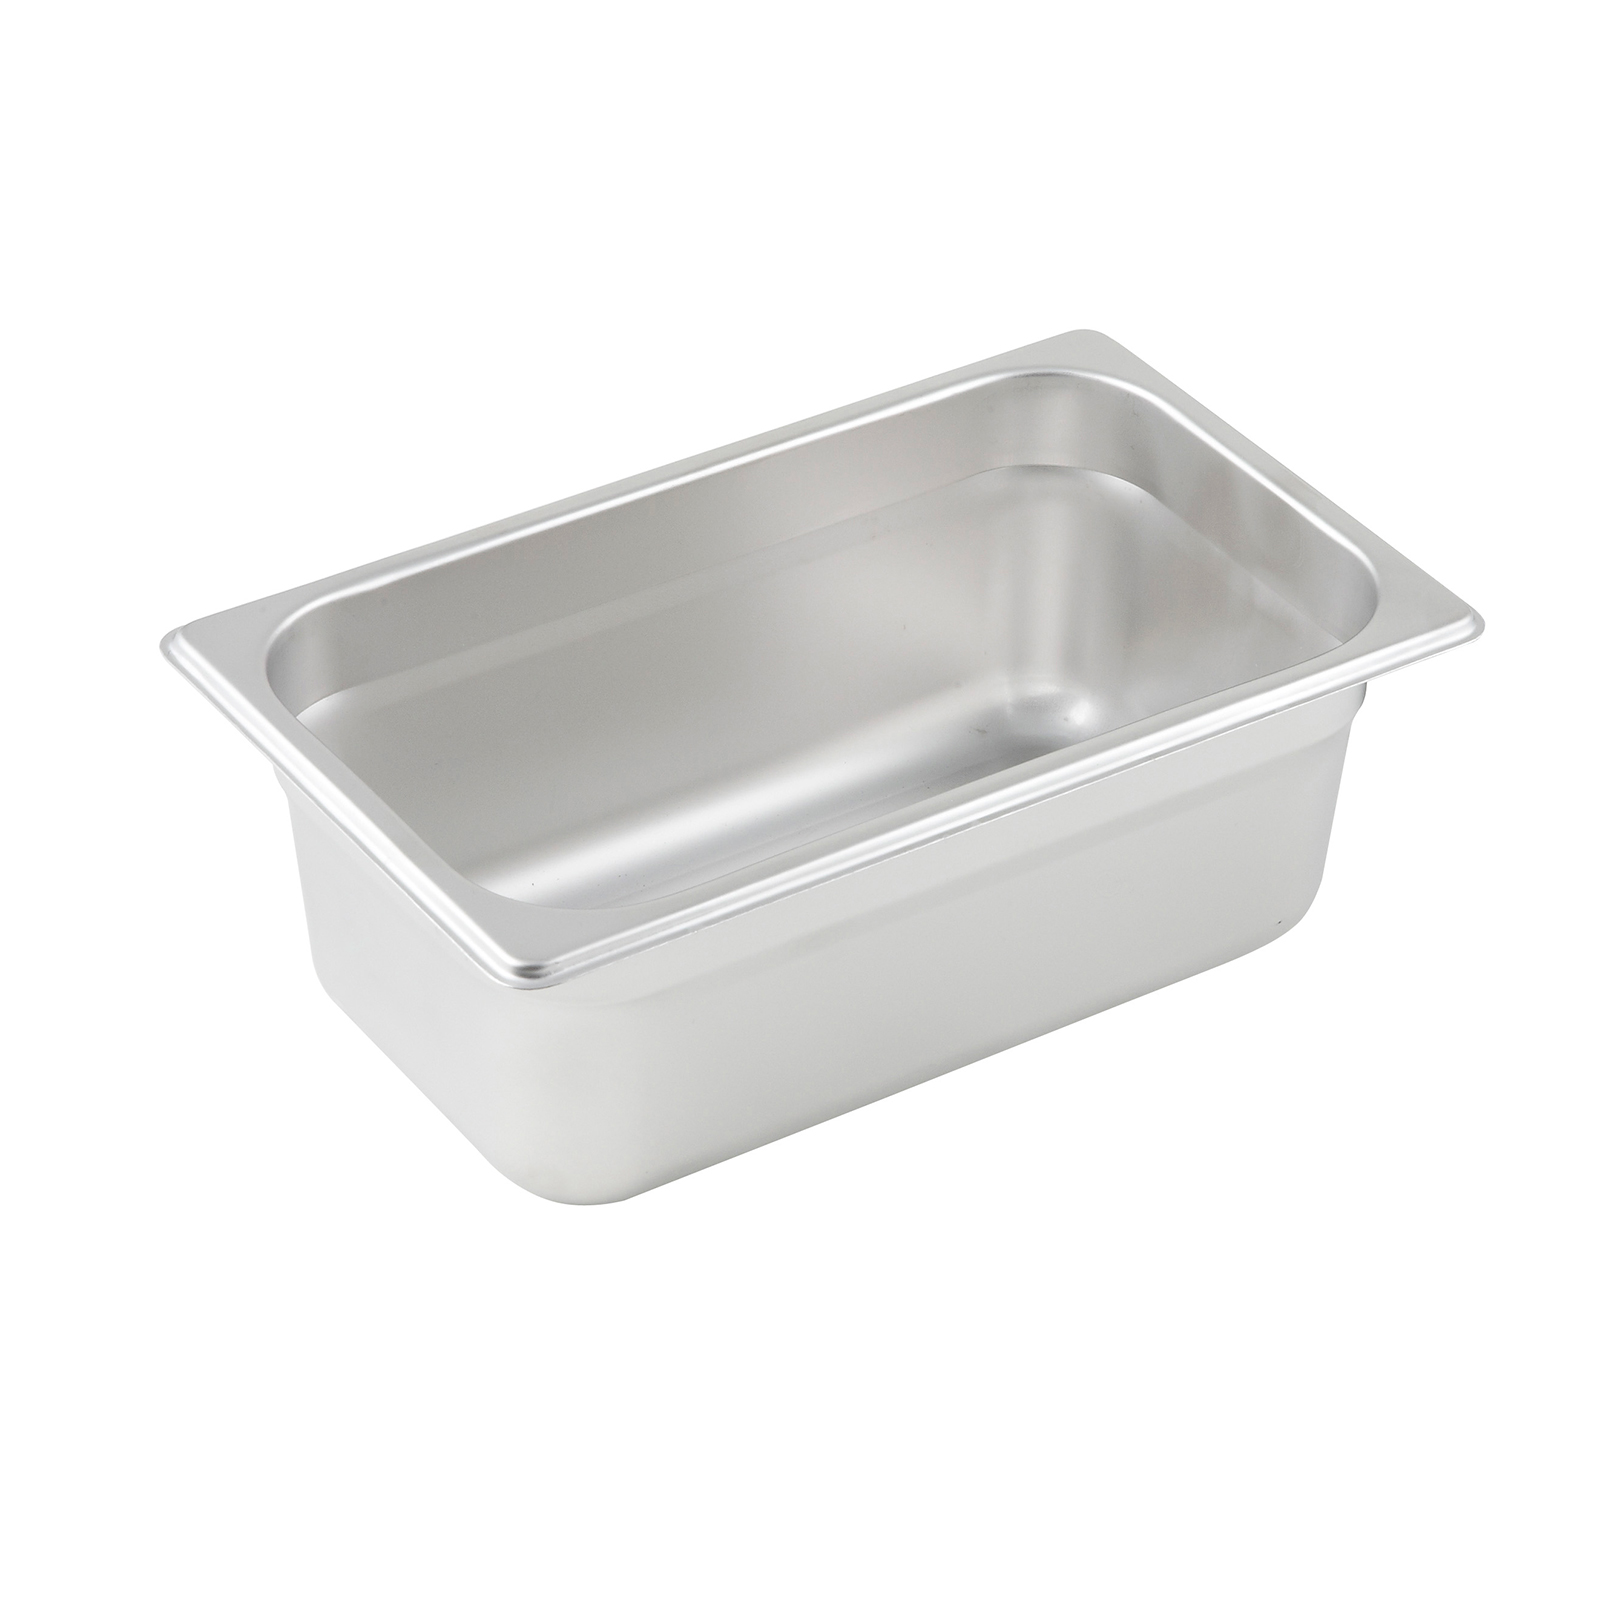 Winco SPJP-404 steam table pan, stainless steel